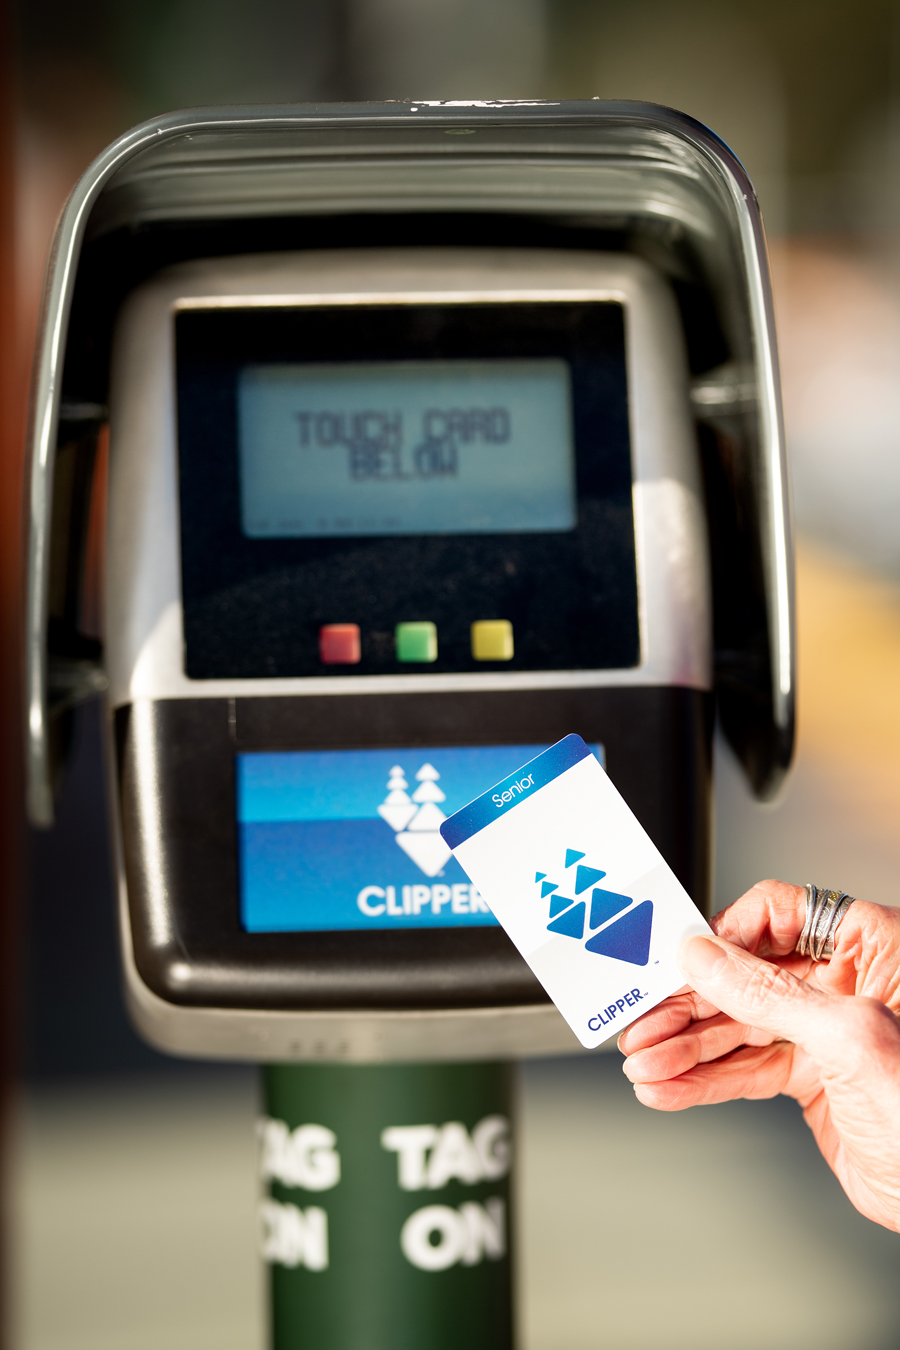 Close-up of a woman's hand holding a Senior Clipper card over a card reader on a transit platform